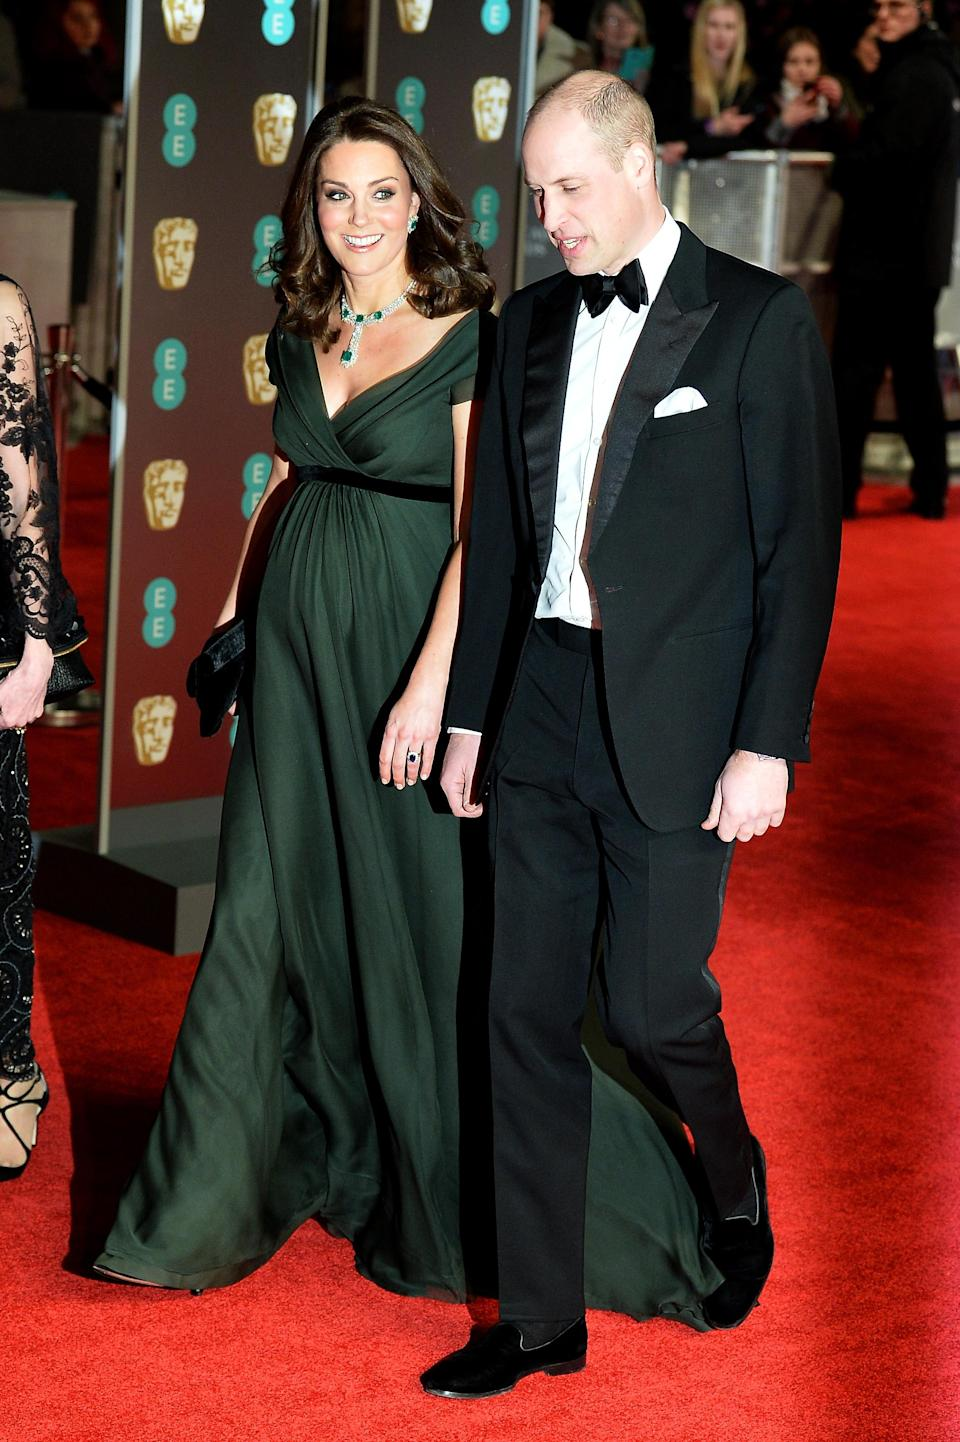 <p>The Duchess of Cambridge chose a forest green Jenny Packham dress for the awards night in 2018 and fans believe the velvet bow was in tribute to the all-black #MeToo dress code. <em>[Photo: Getty]</em> </p>